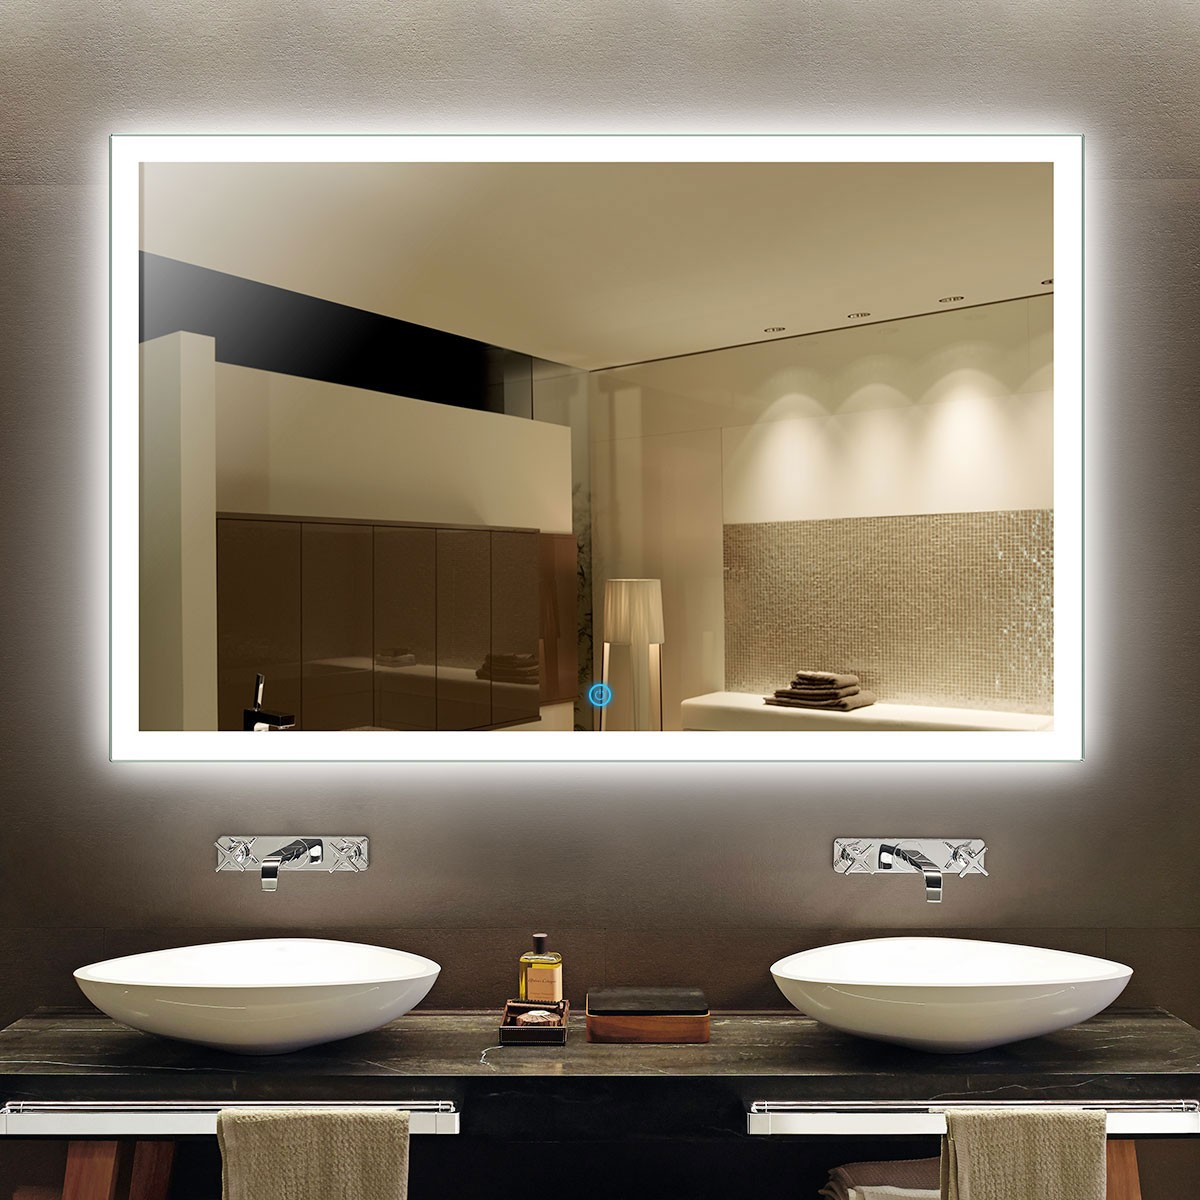 55 x 36 In Horizontal LED Bathroom Mirror with Touch Button (DK-OD-N031-C)